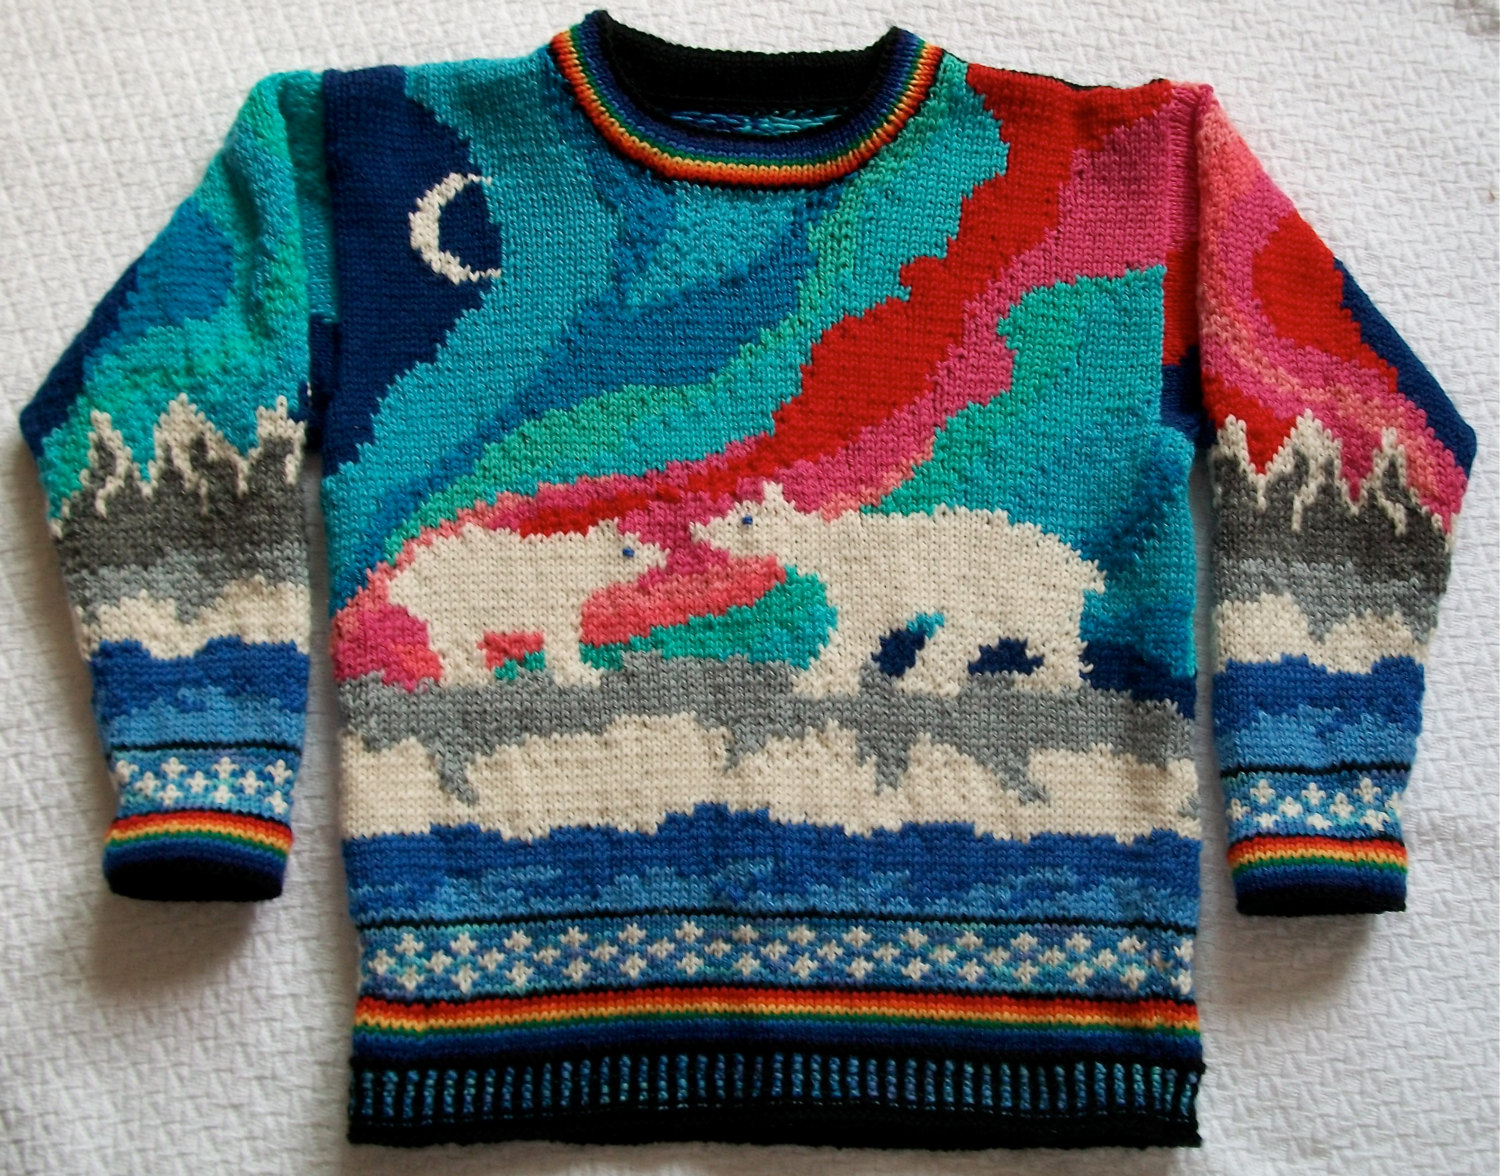 Knitting Pattern for Aurora Sweater